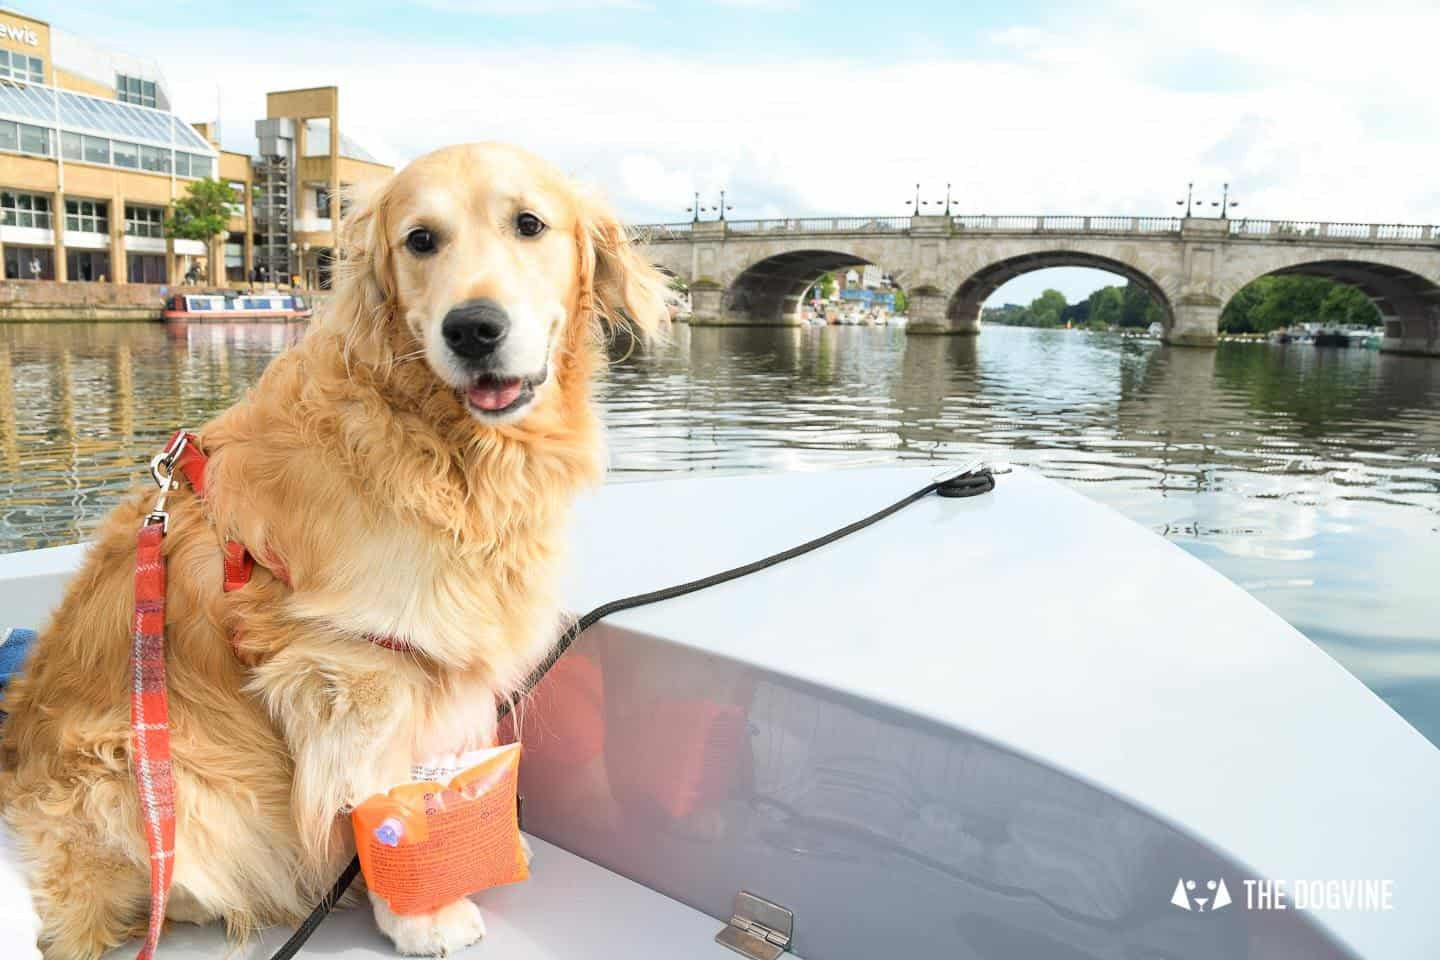 Dog-friendly Go Boat Kingston Upon Thames 27